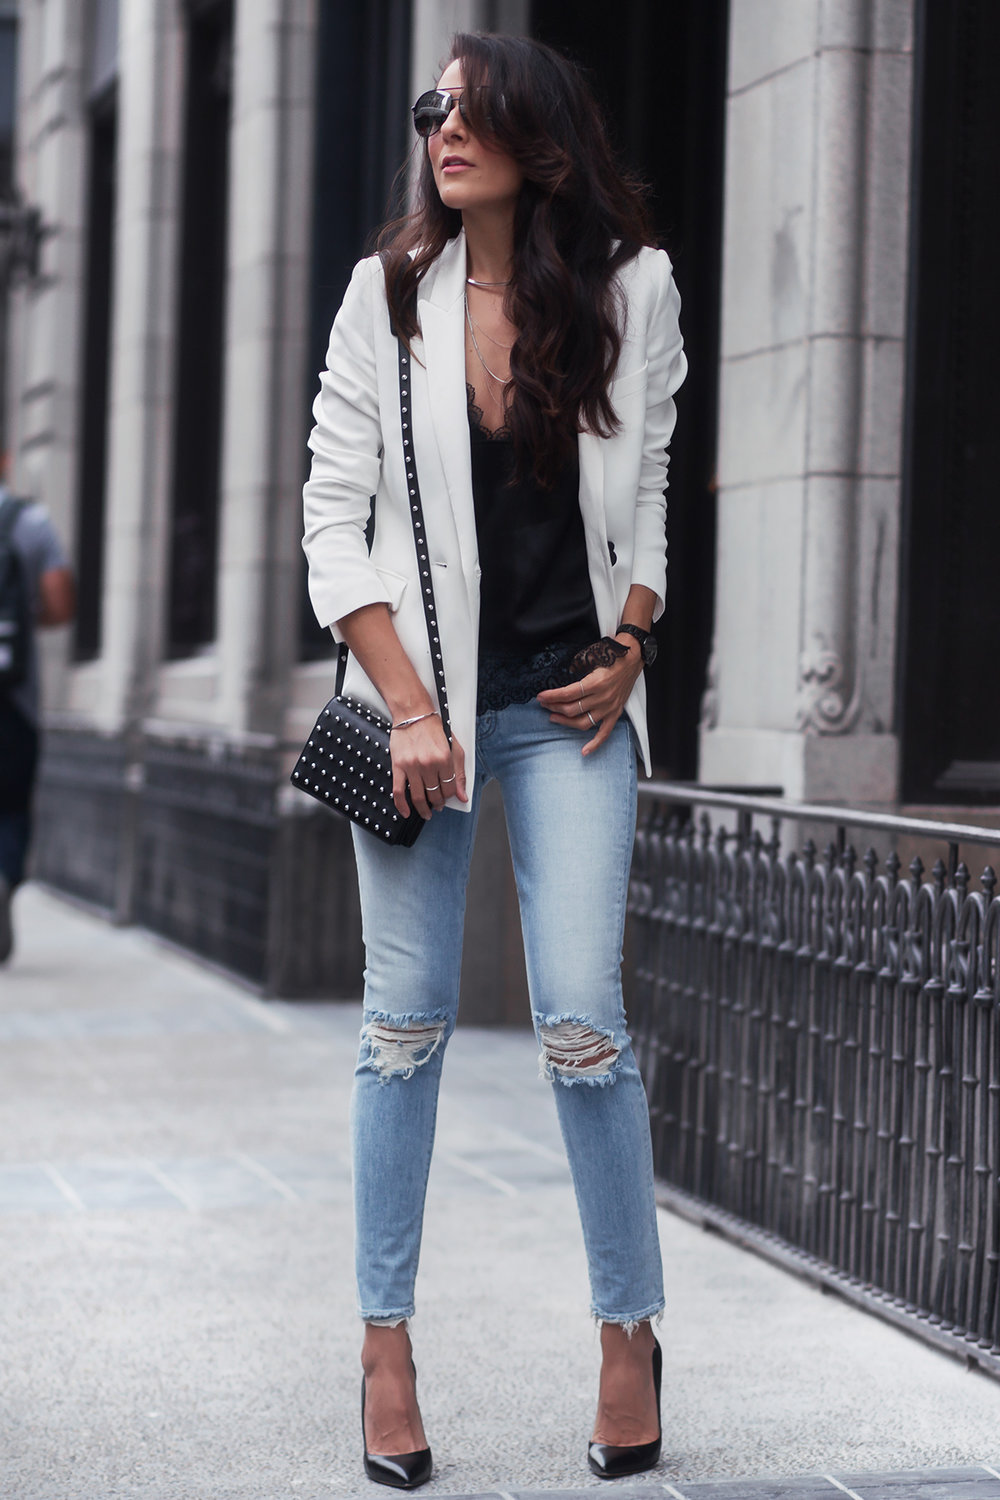 Composure_By_Kelly_Topshop_Blazer_Gianvito_Rossi_Alexander_Wang_Streetstyle.jpg